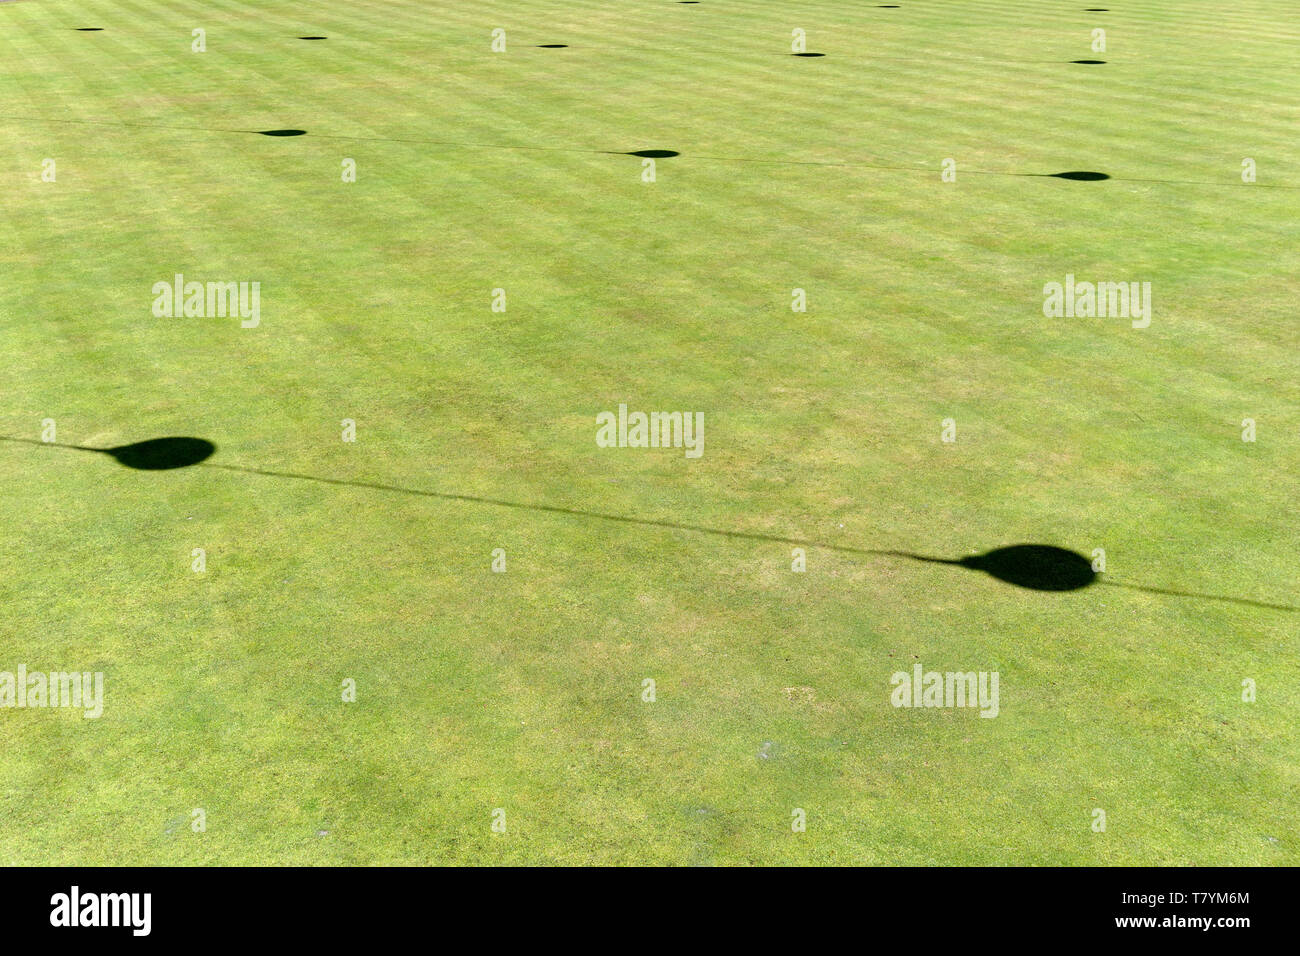 Shadows on a green lawn cast by overhanging electric lights forming a mathematical pattern - Stock Image